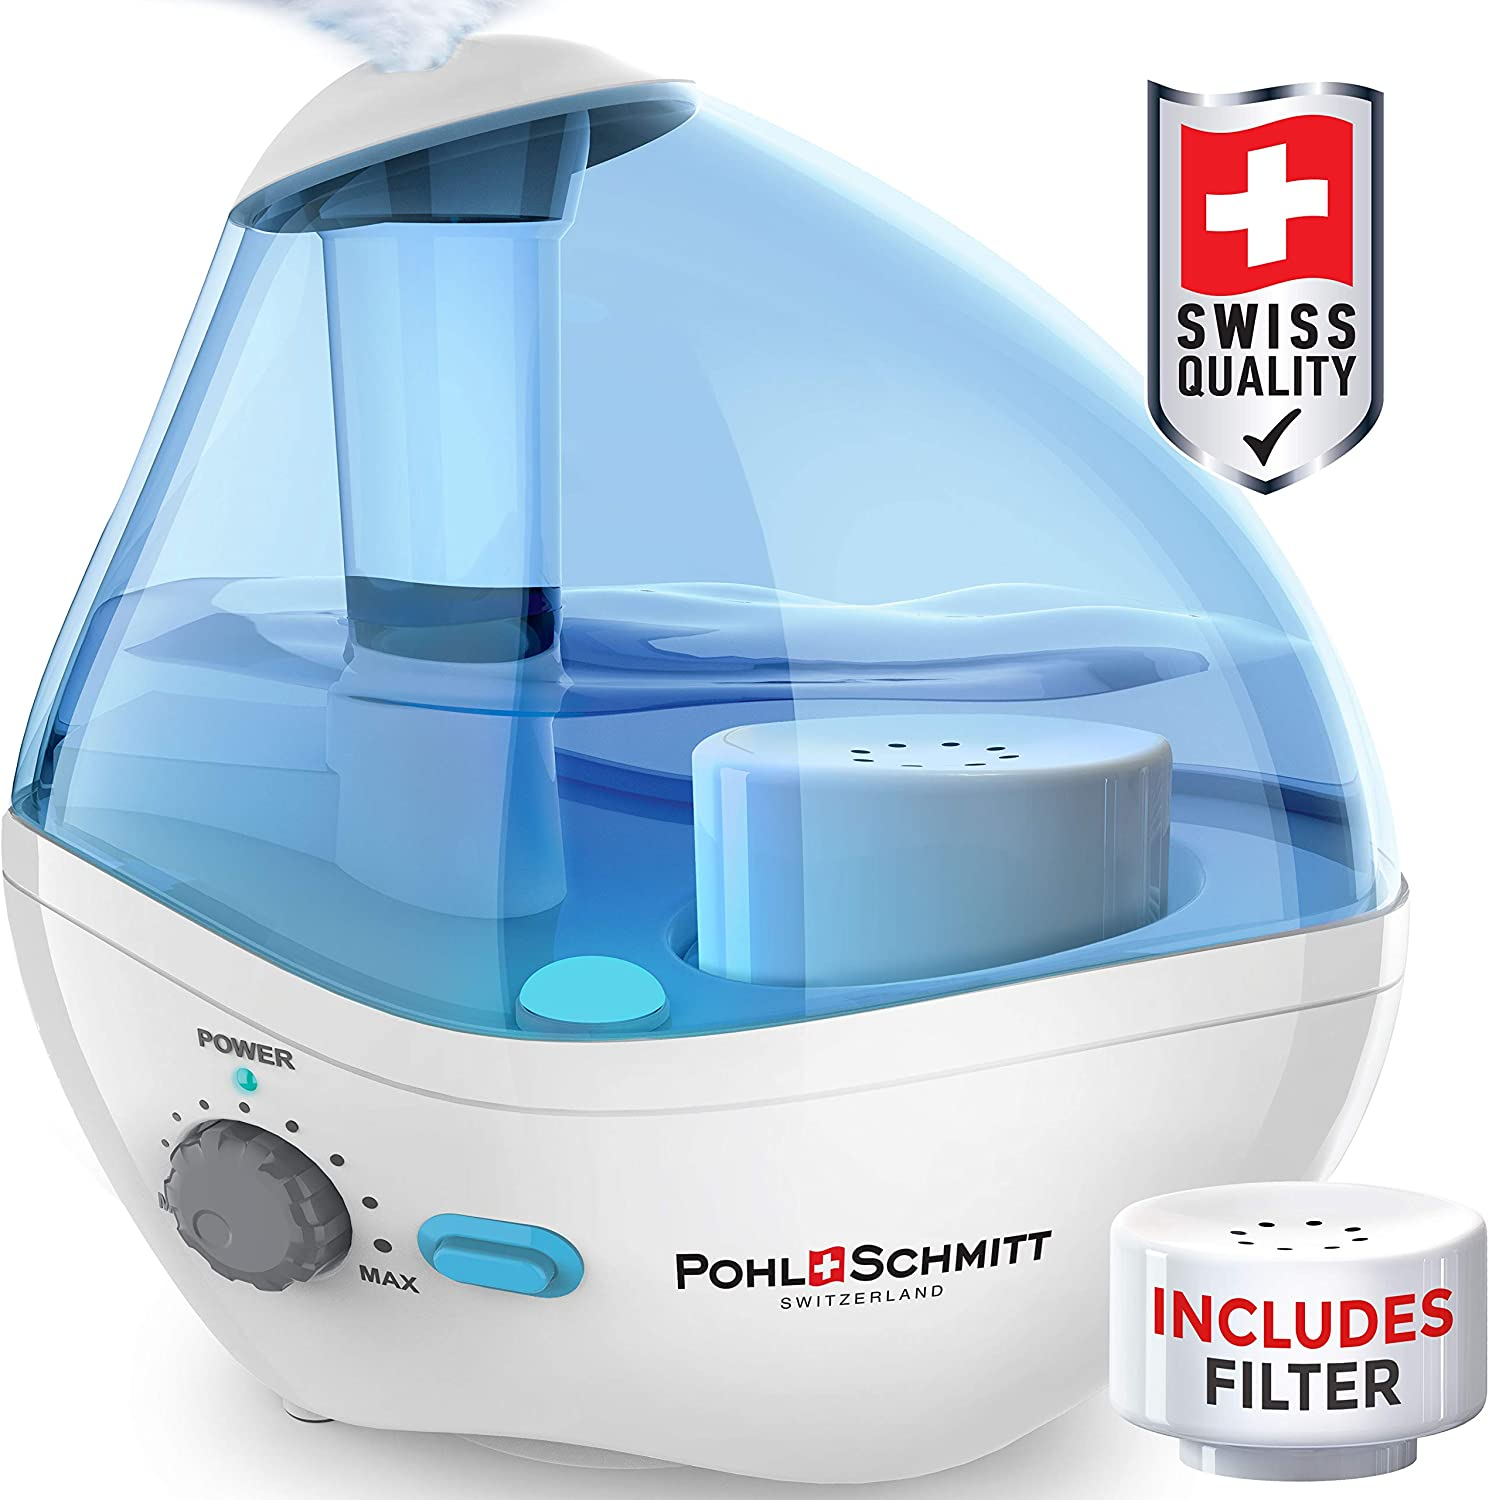 Pohl+Schmitt Ultrasonic Humidifier for Bedrooms, Whisper-Quiet Operation with Nightlight and Auto-Shut Off, Adjustable Mist, 16 hours Operating Time & Filter Included